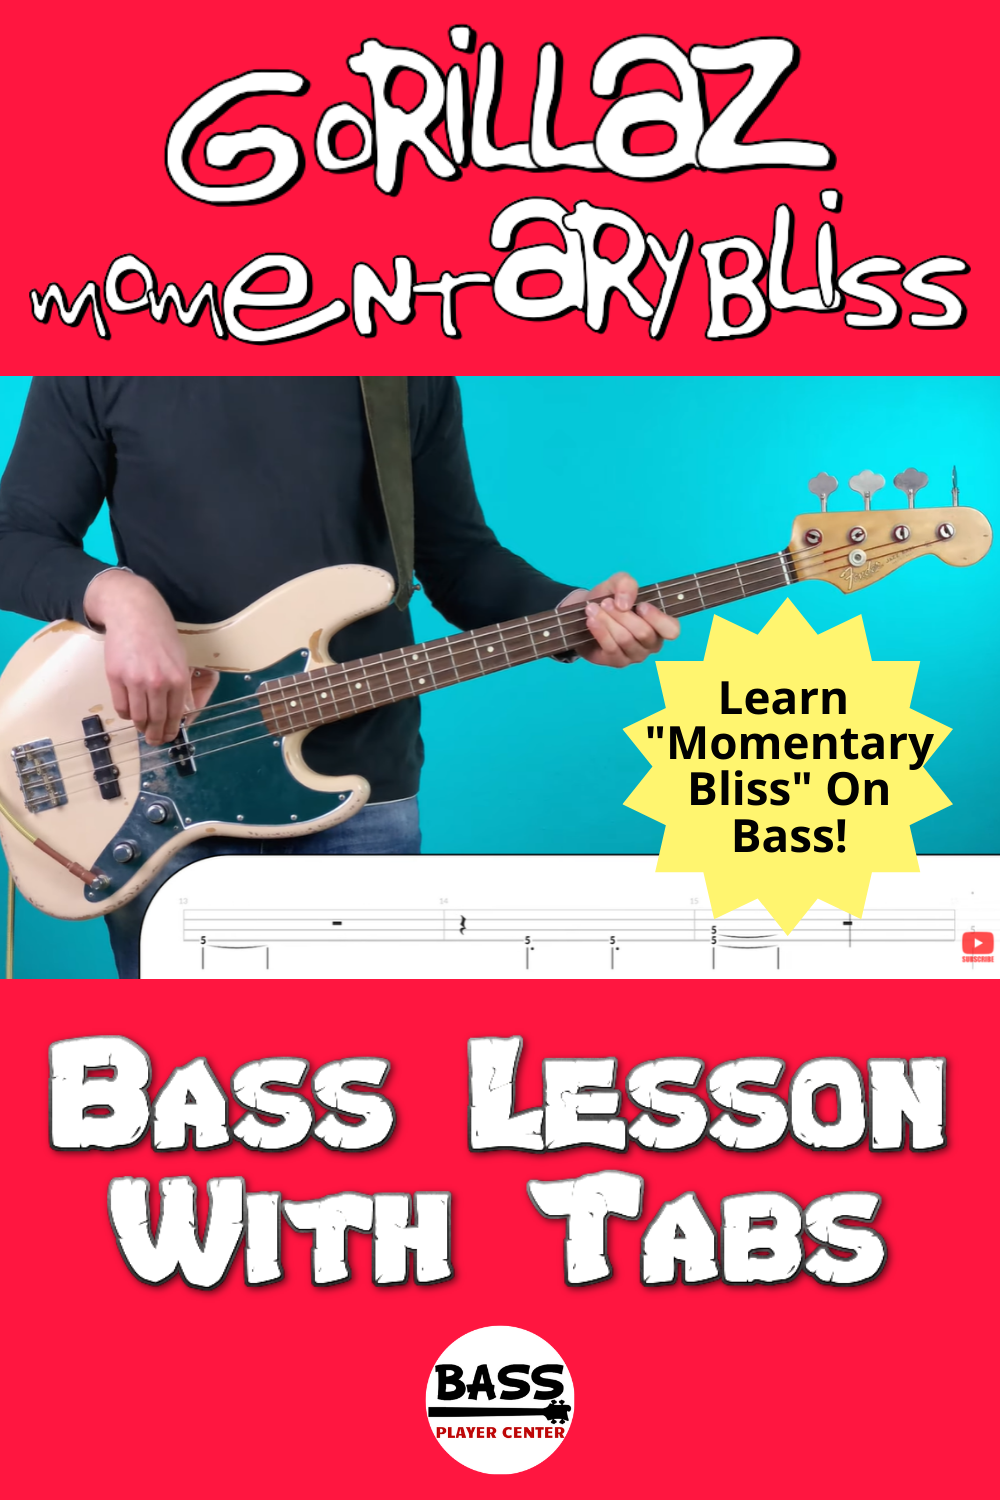 Momentary - Bliss Gorillaz - Bass Lesson With Tabs